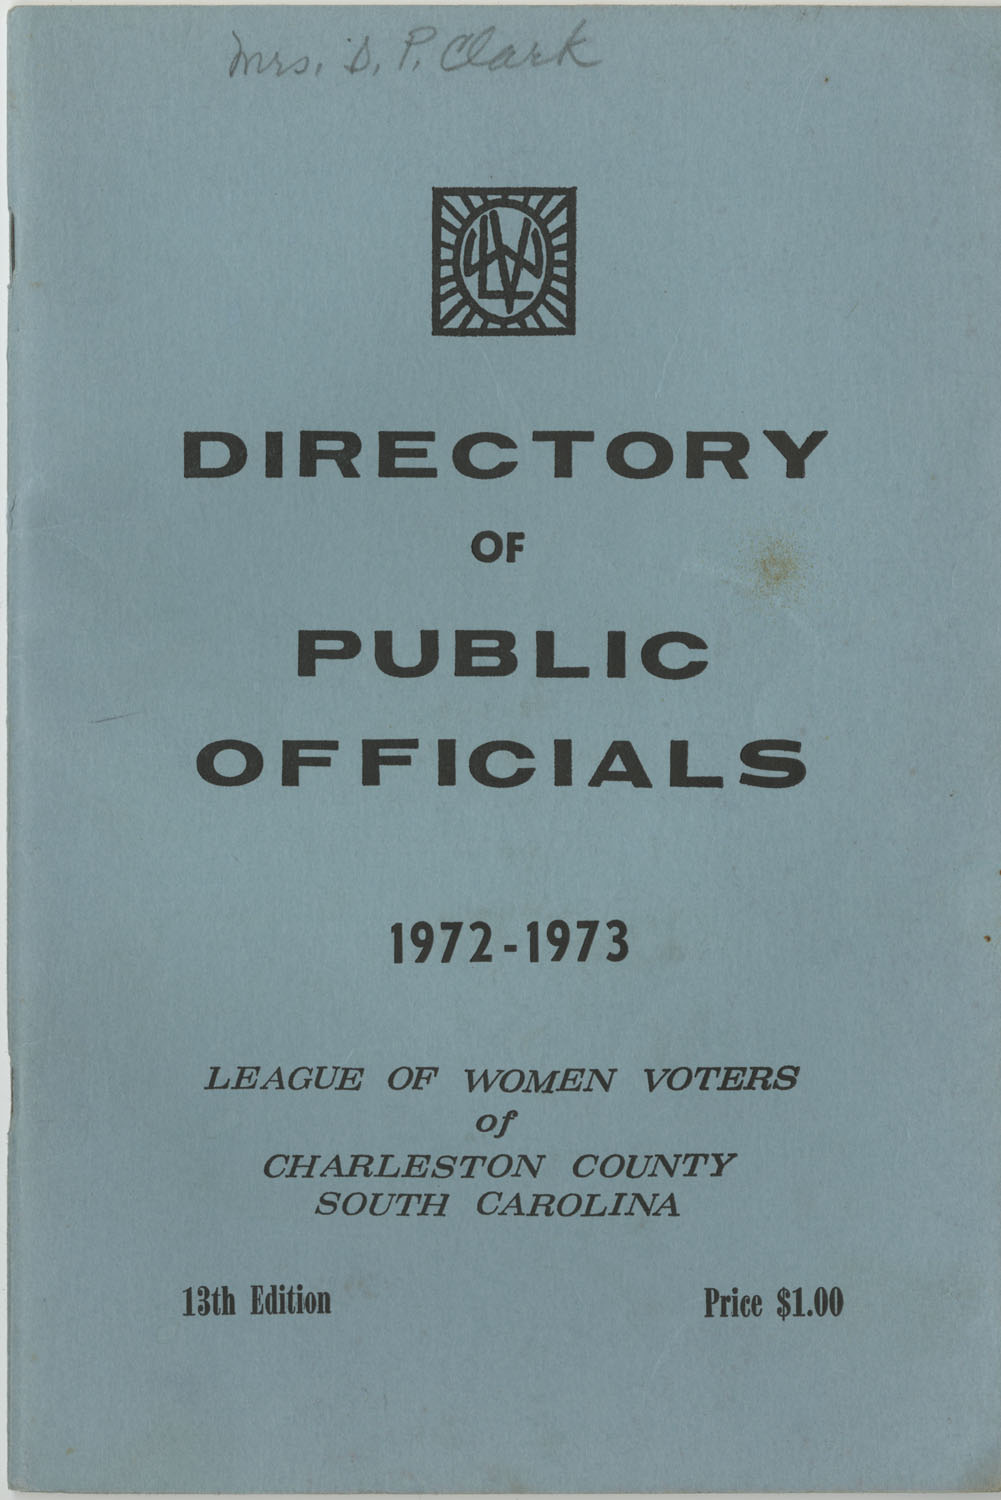 Directory of Public Officials, 1972-1973